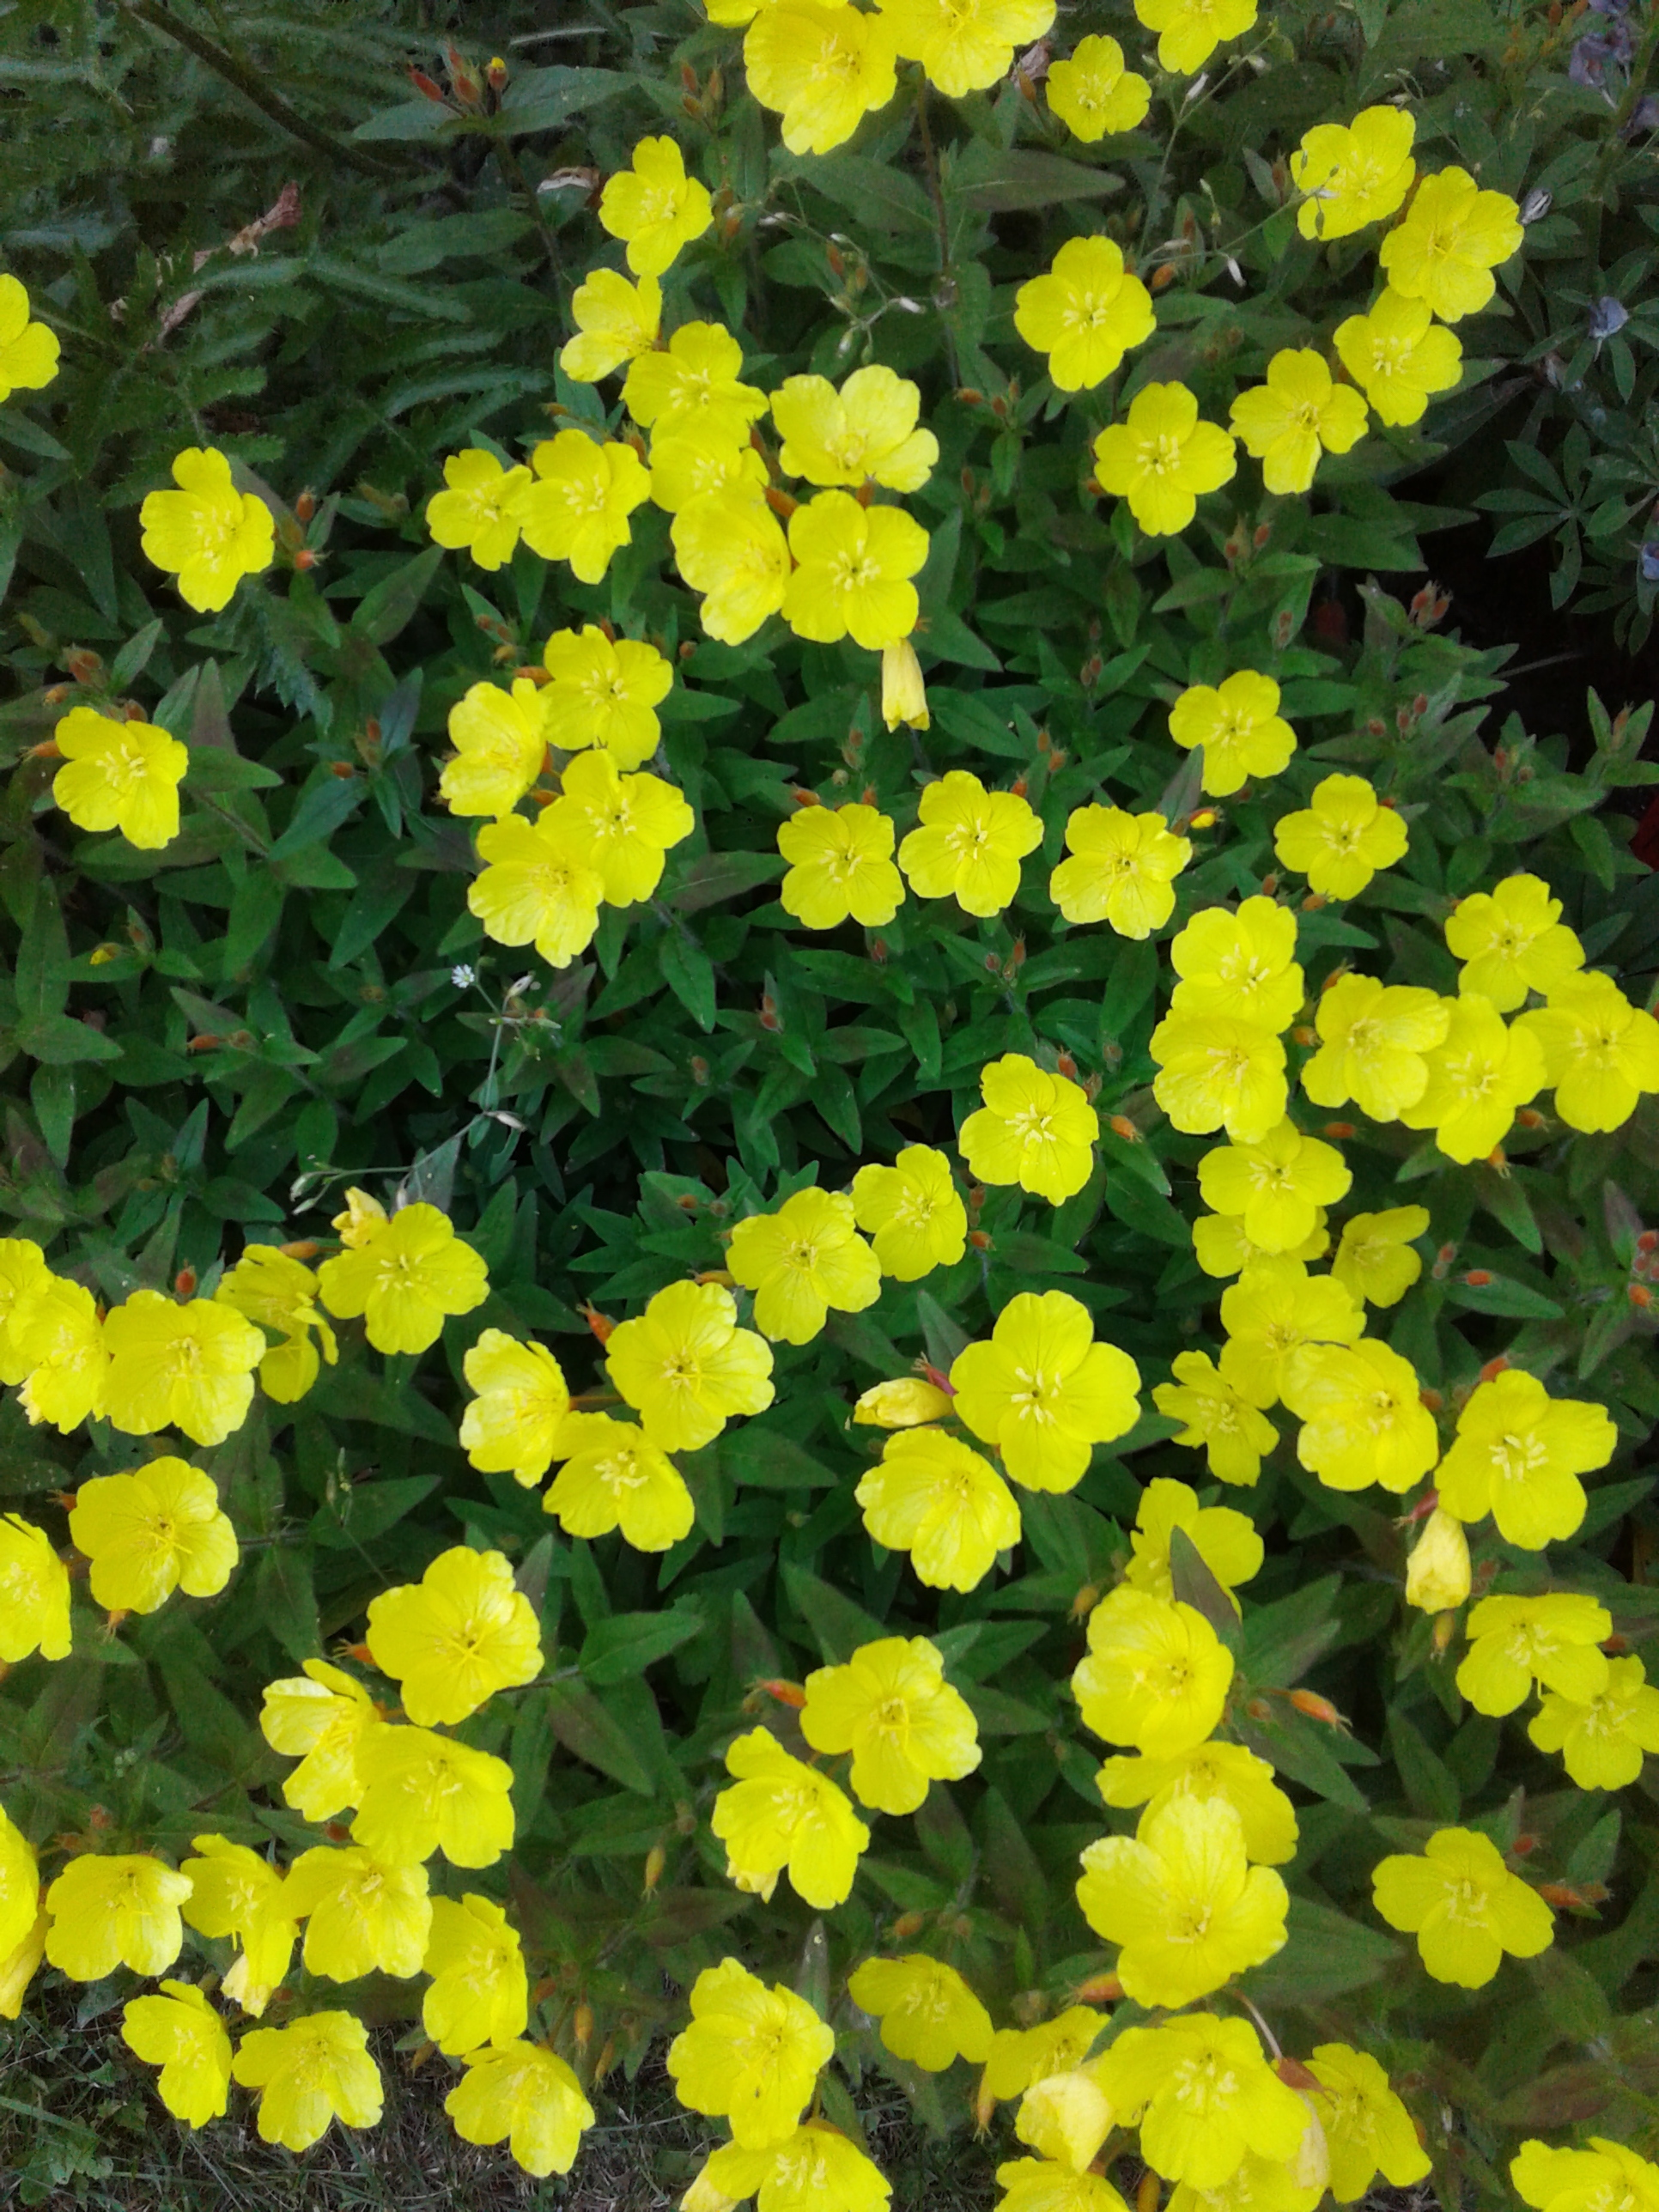 Sundrops all over 2018